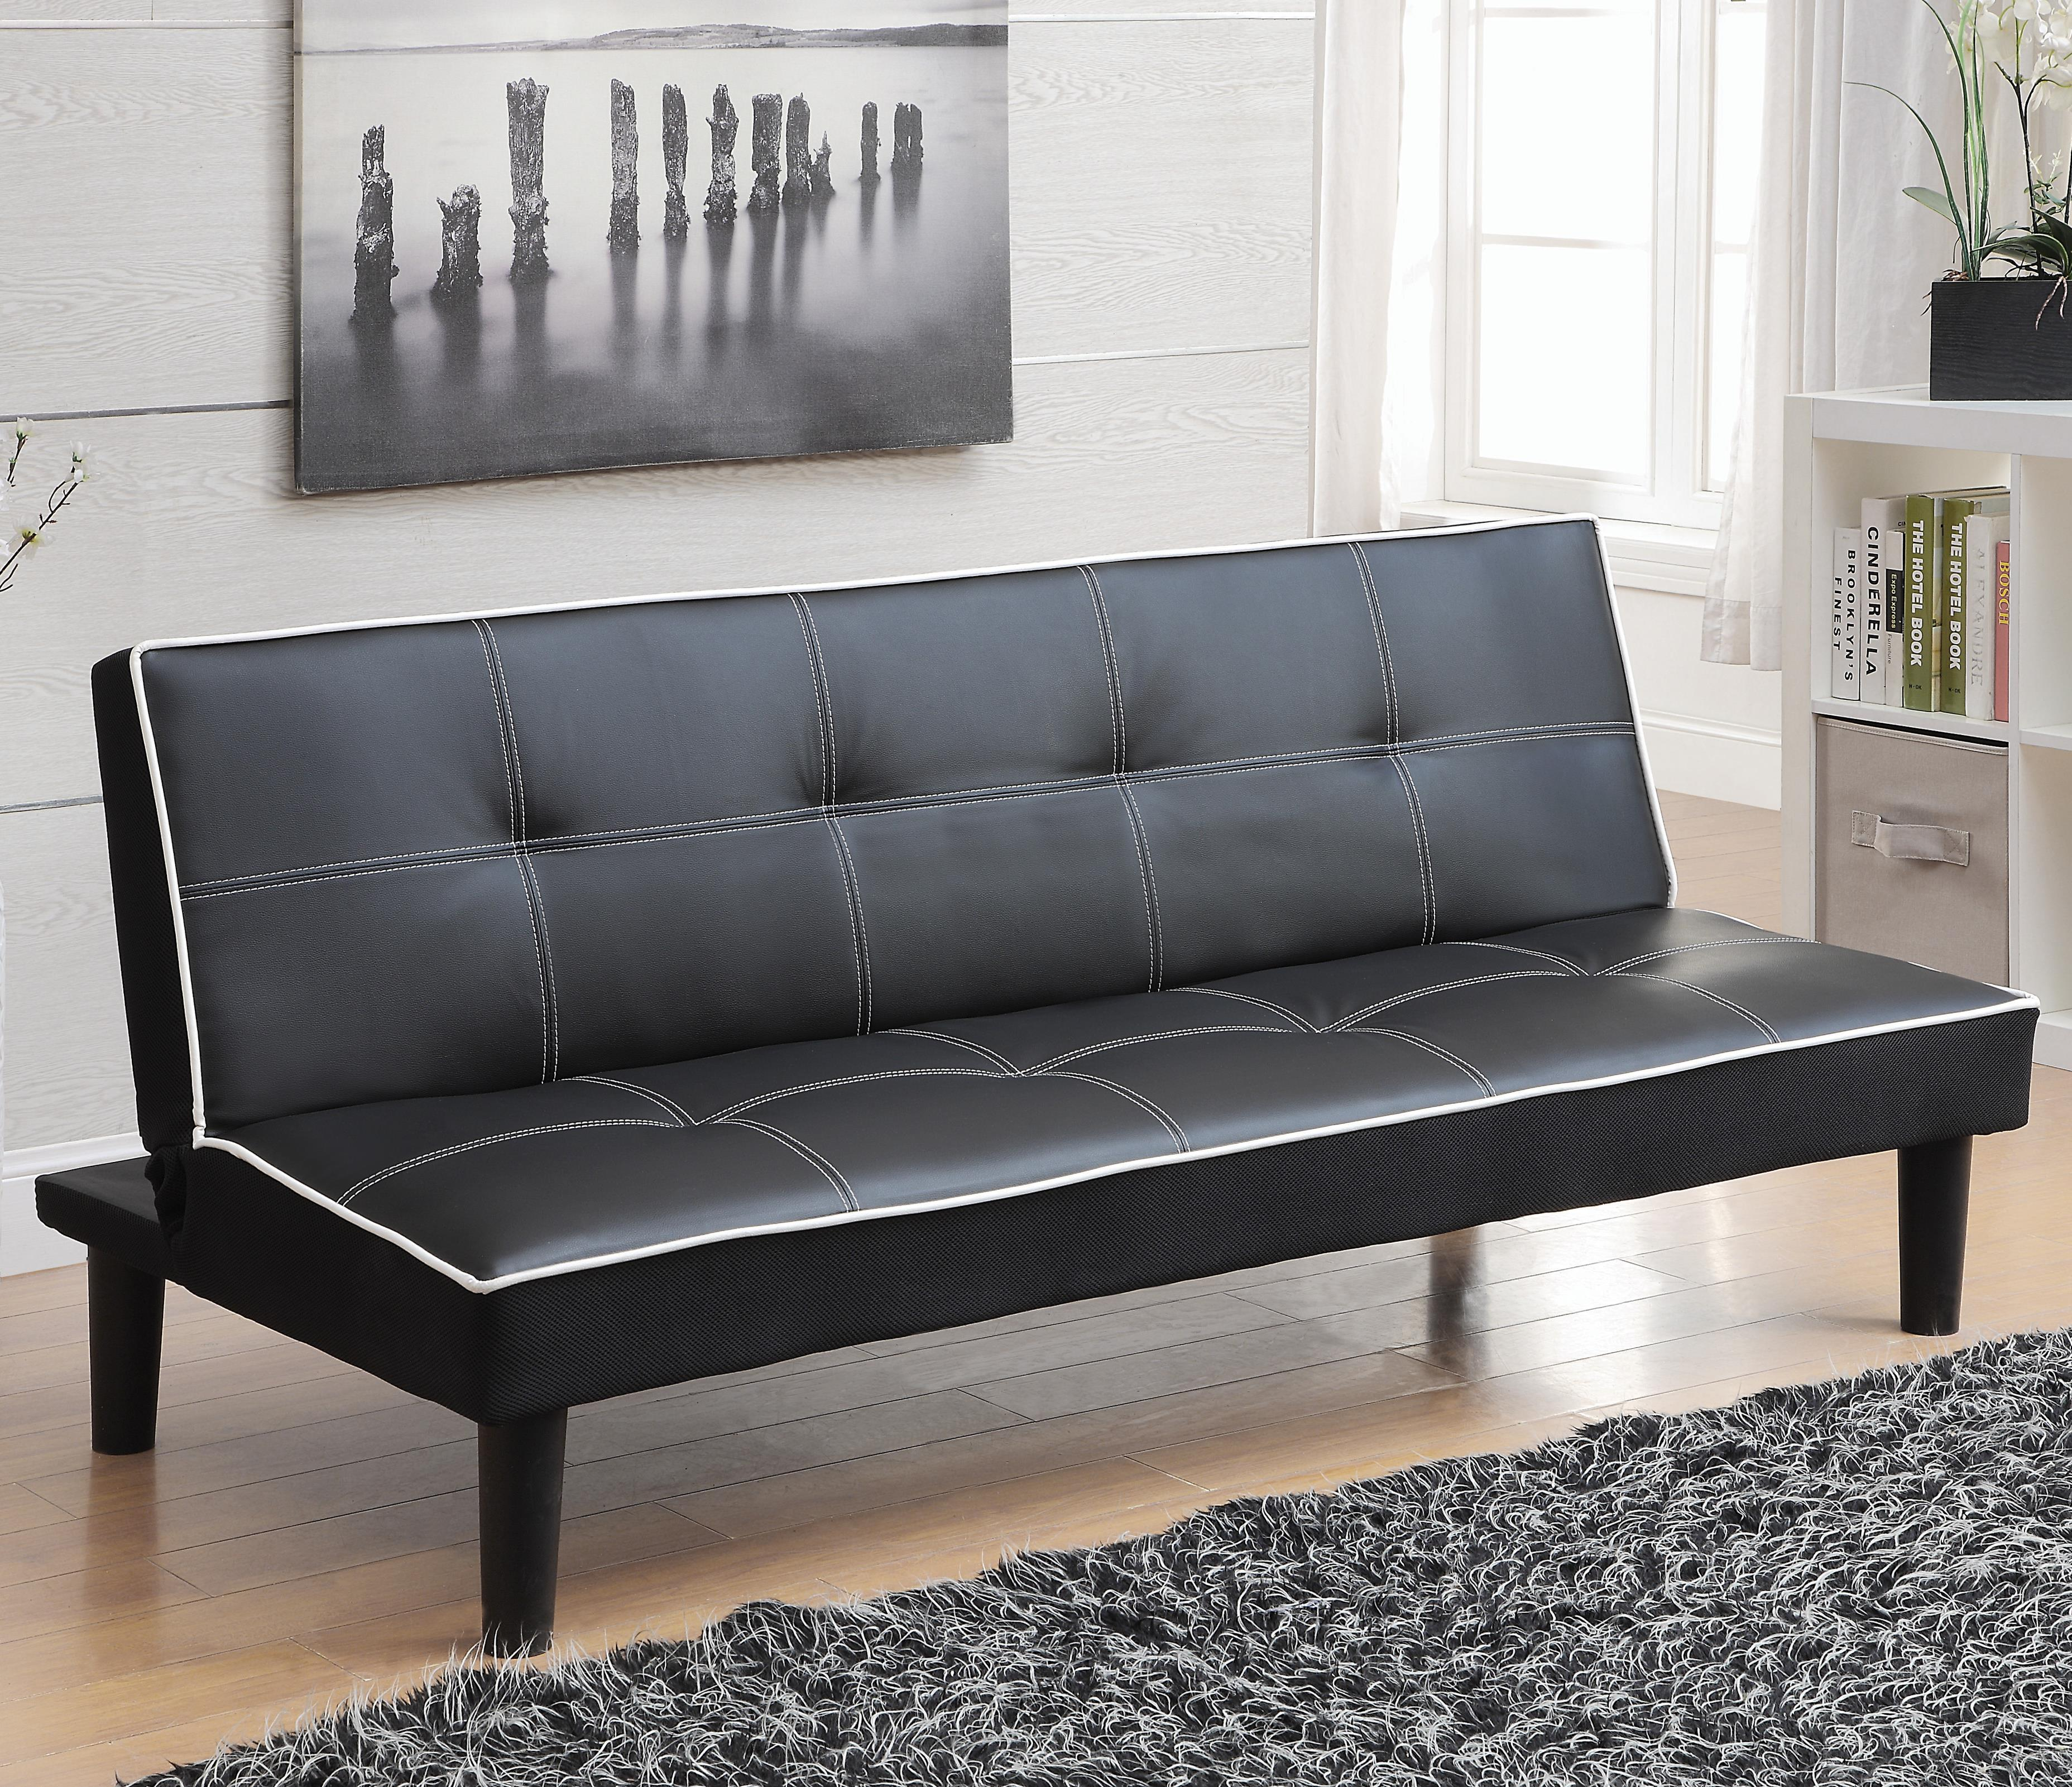 Coaster Sofa Beds and Futons -  Sofa Bed - Item Number: 550044